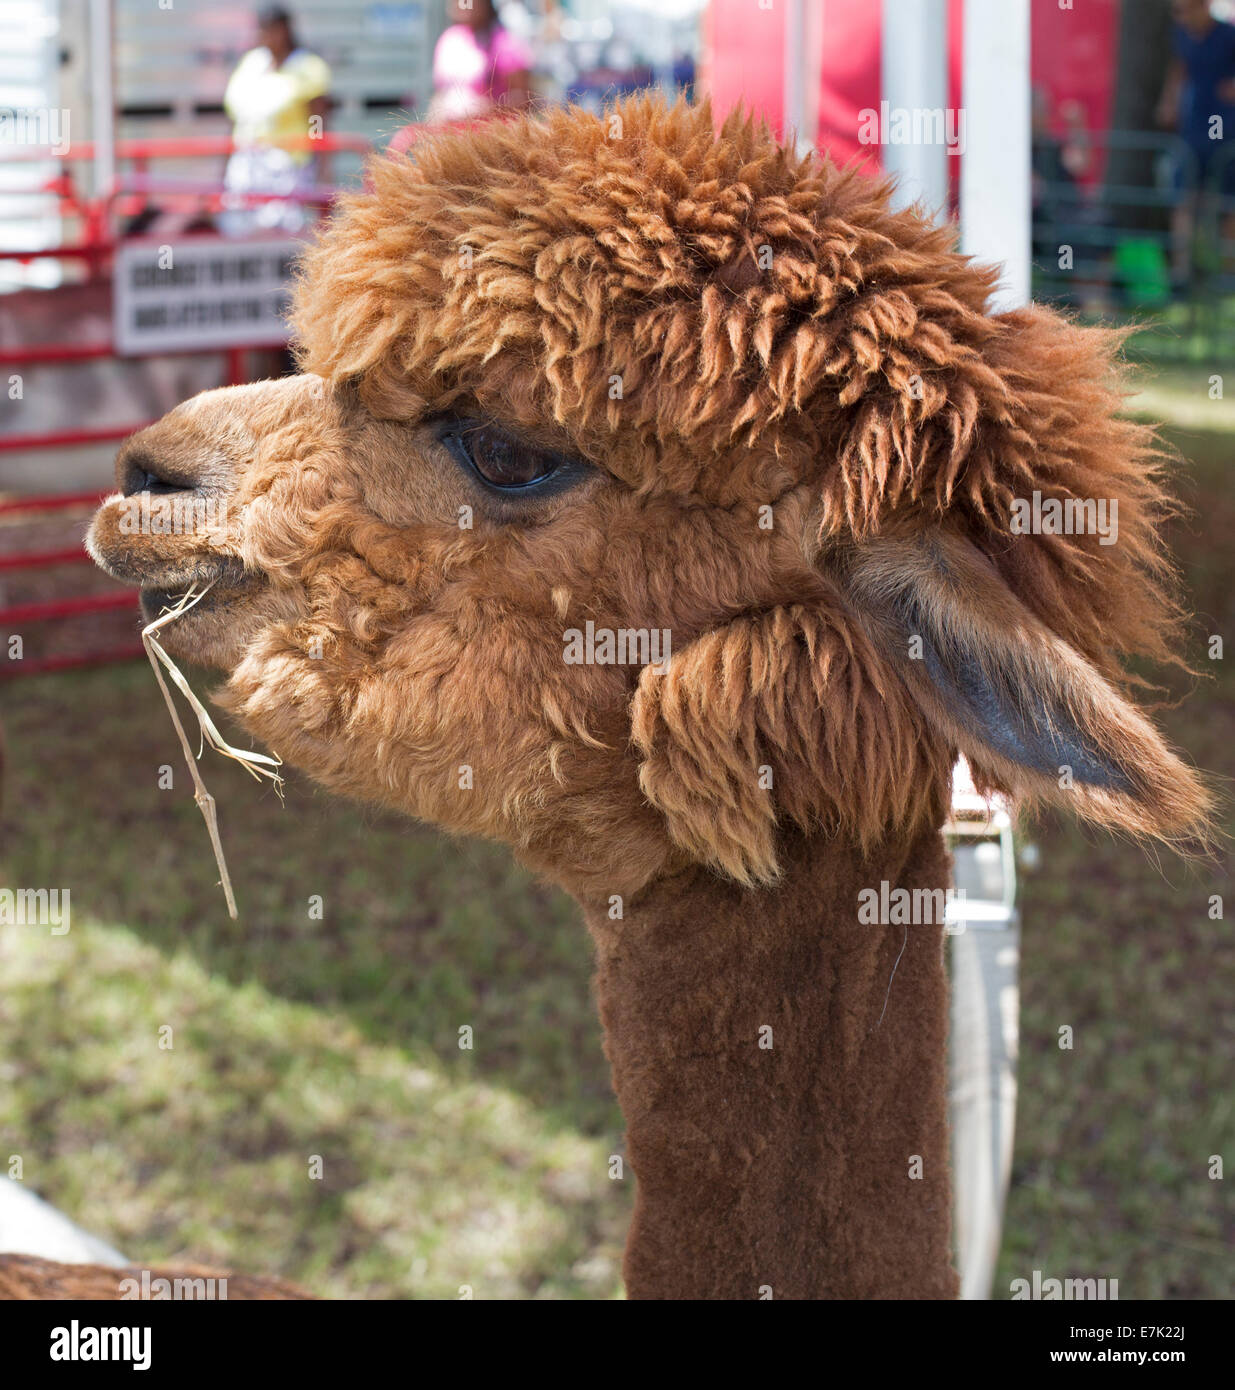 Sterling Heights, Michigan - An alpaca at a petting zoo. - Stock Image